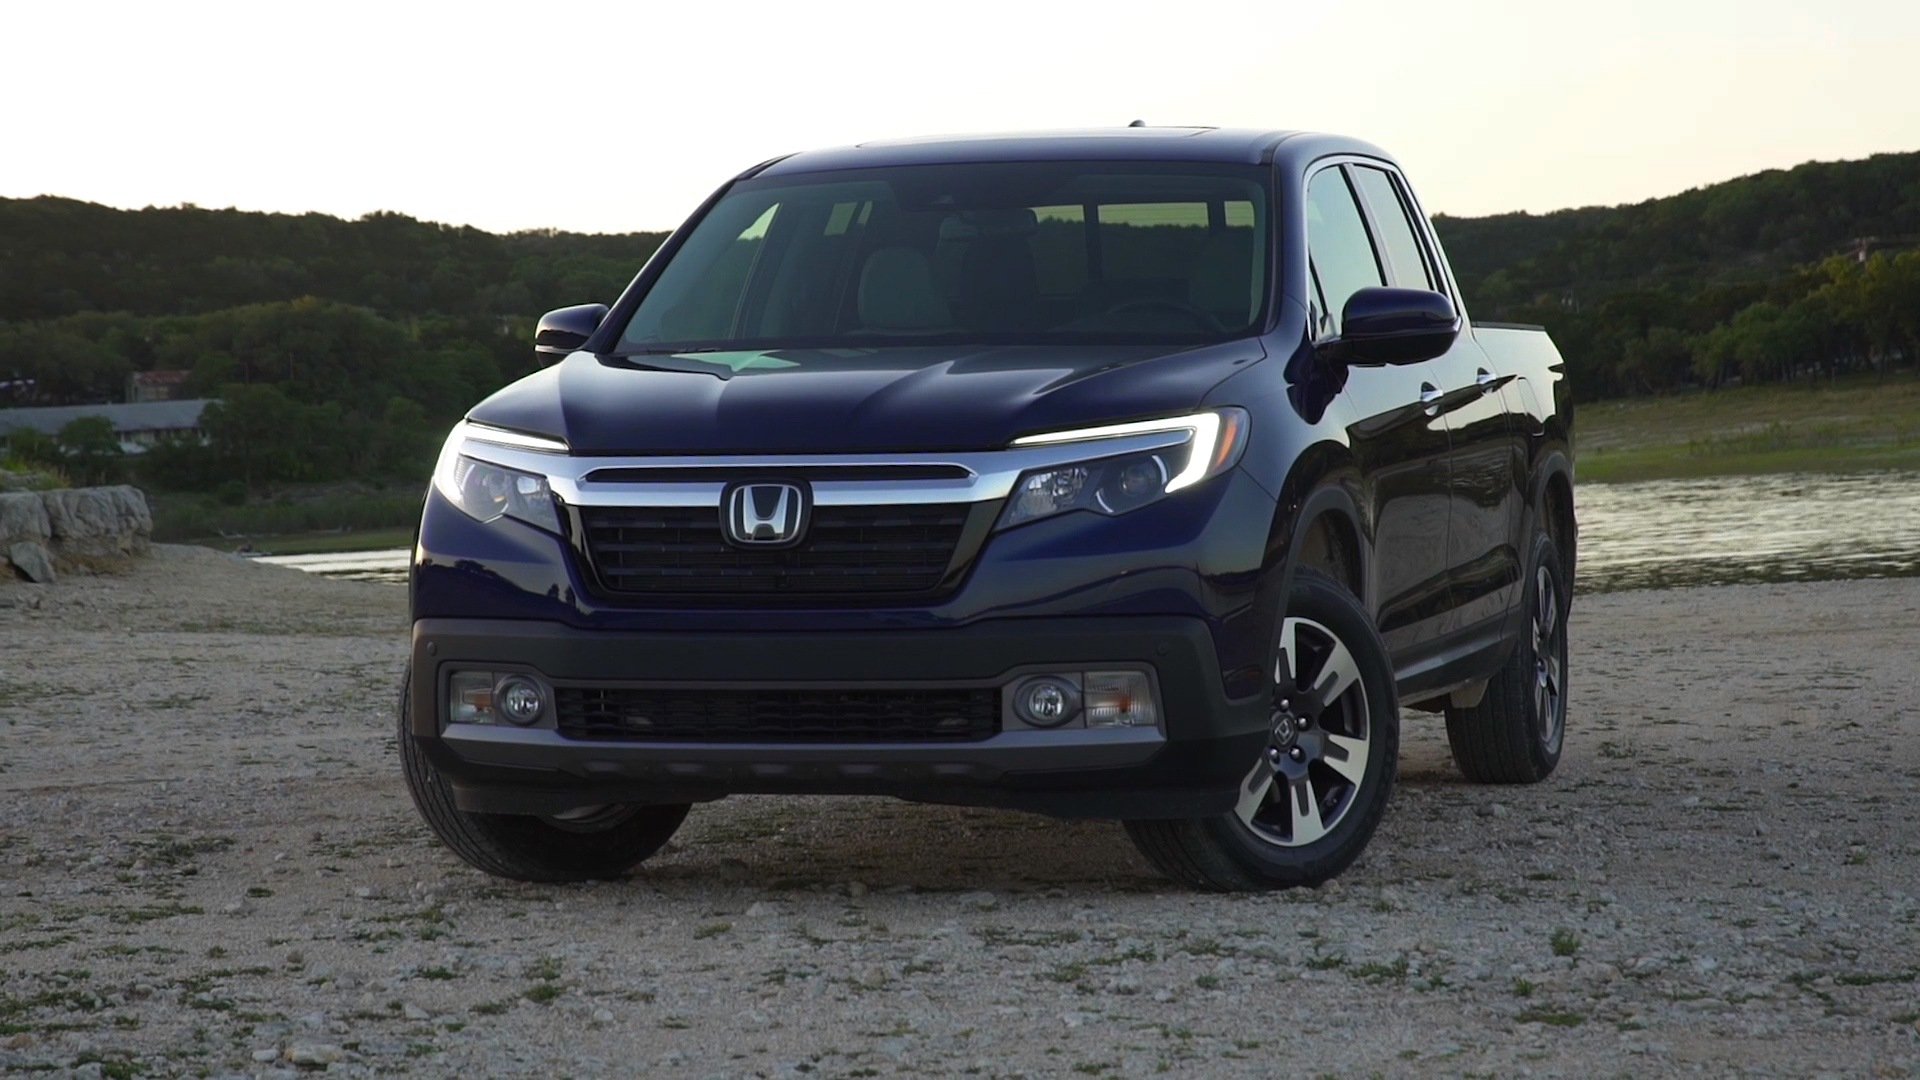 2017 Honda Ridgeline Canadian Car Reviews Driving Television Boat Towing With